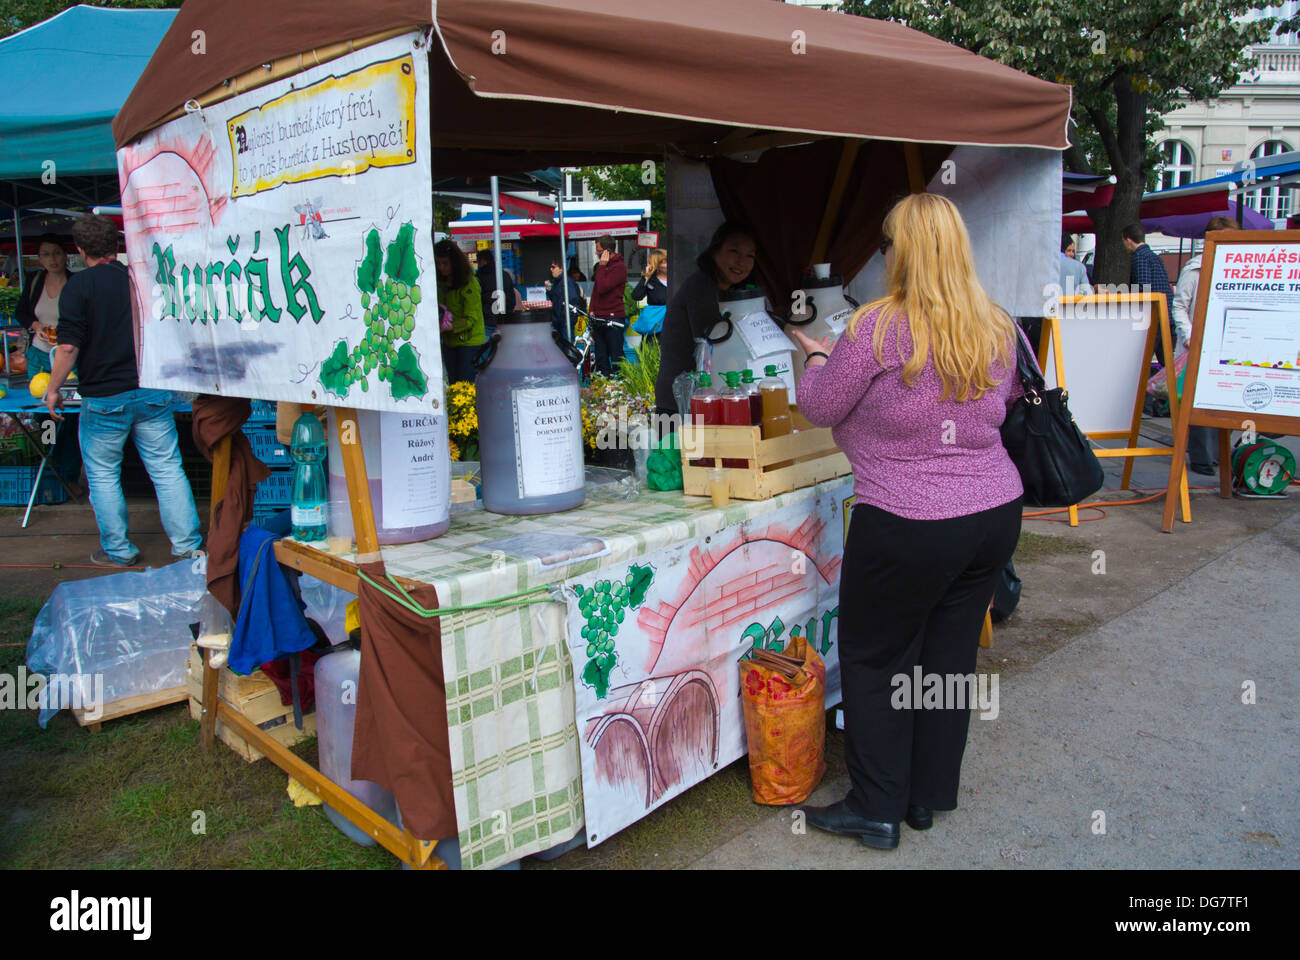 Burcak stall at wine festival Jiriho z Podebrad square Zizkov district Prague Czech Republic Europe - Stock Image